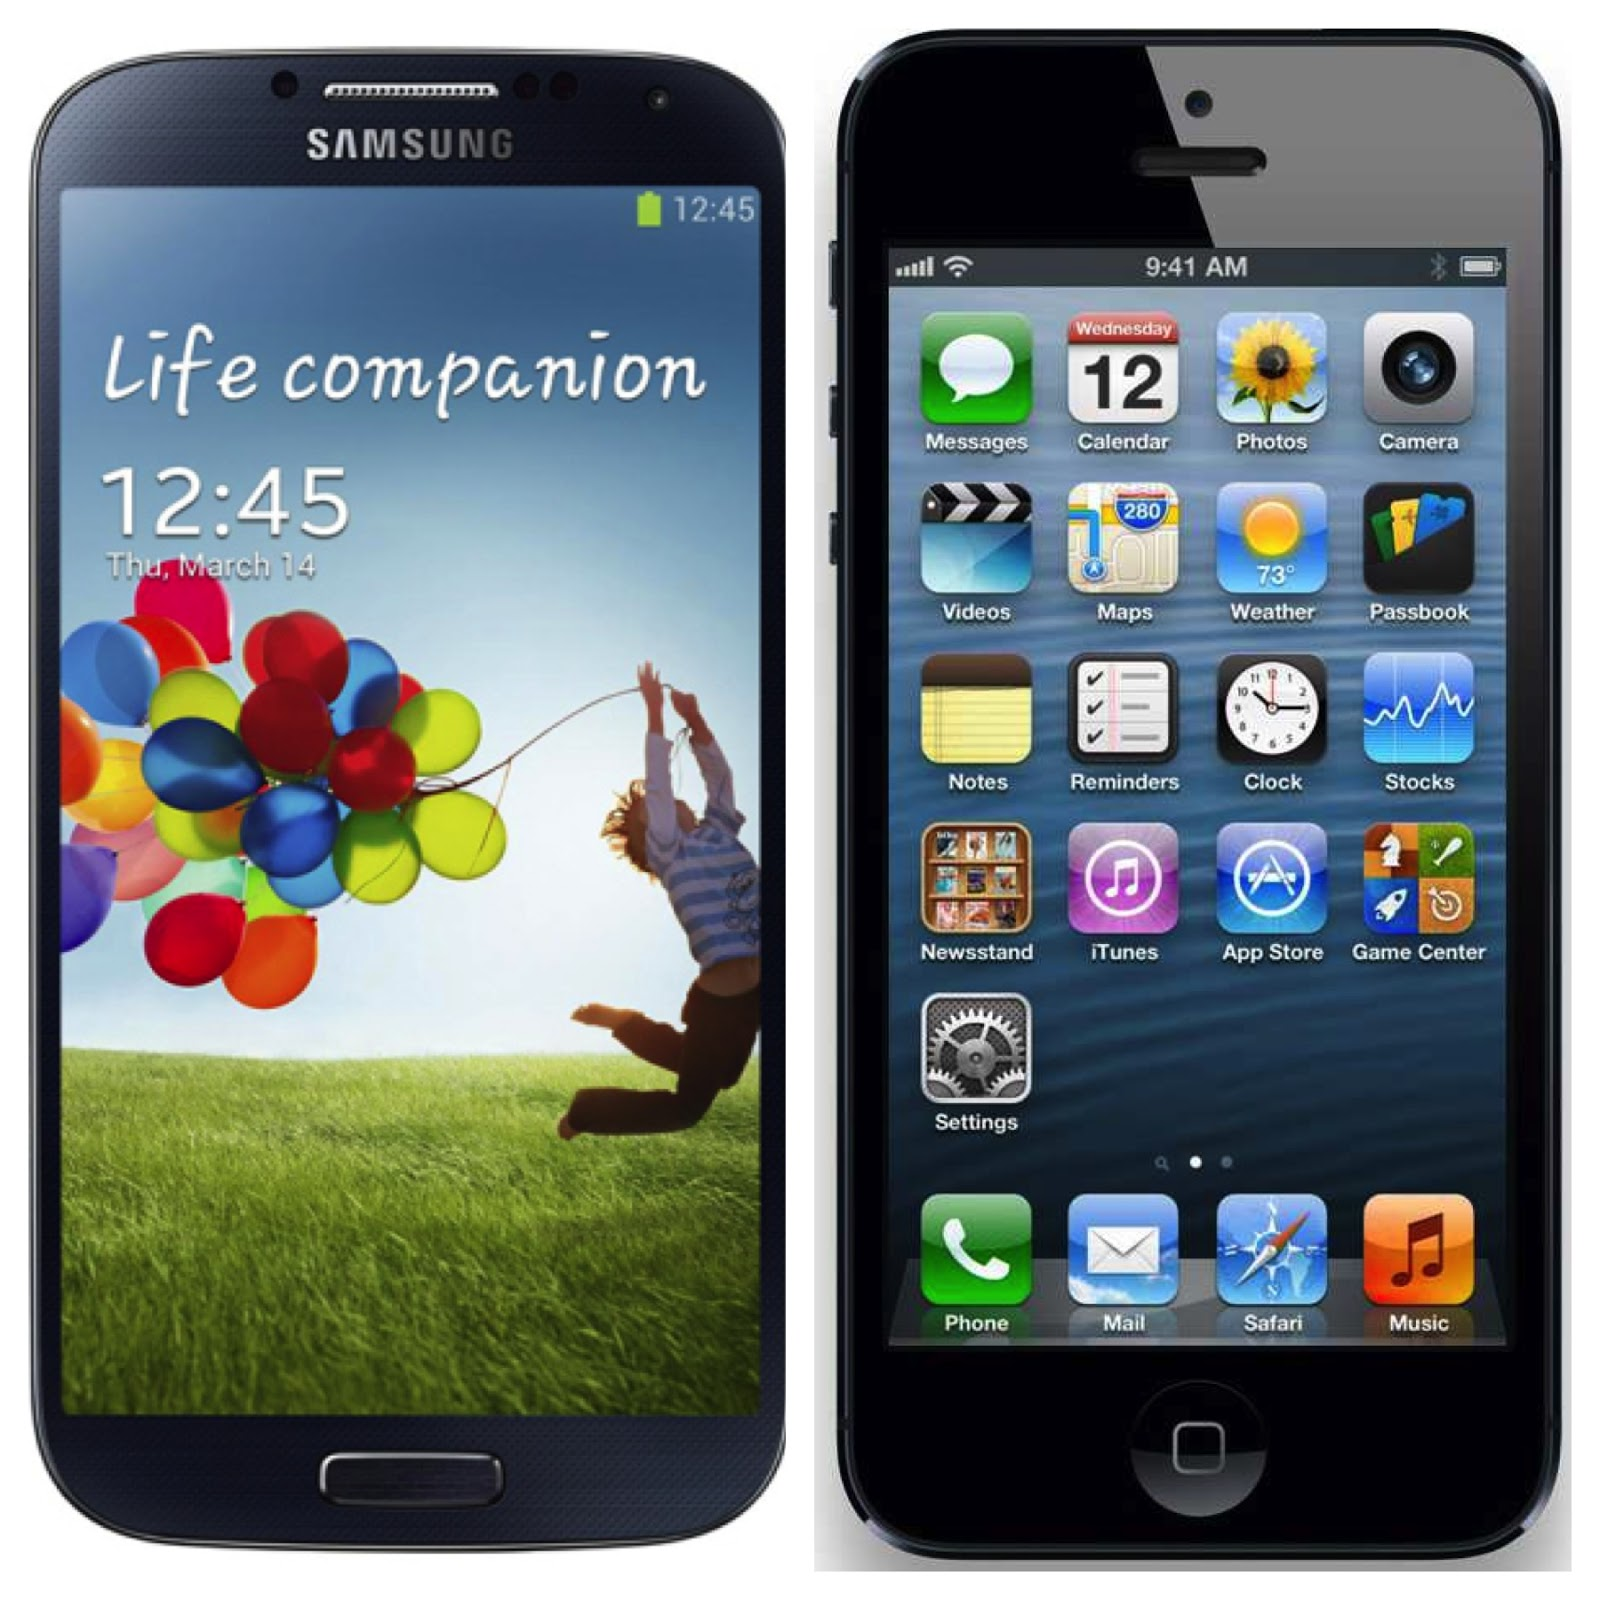 Differenze tra iphone5 e samsung s4